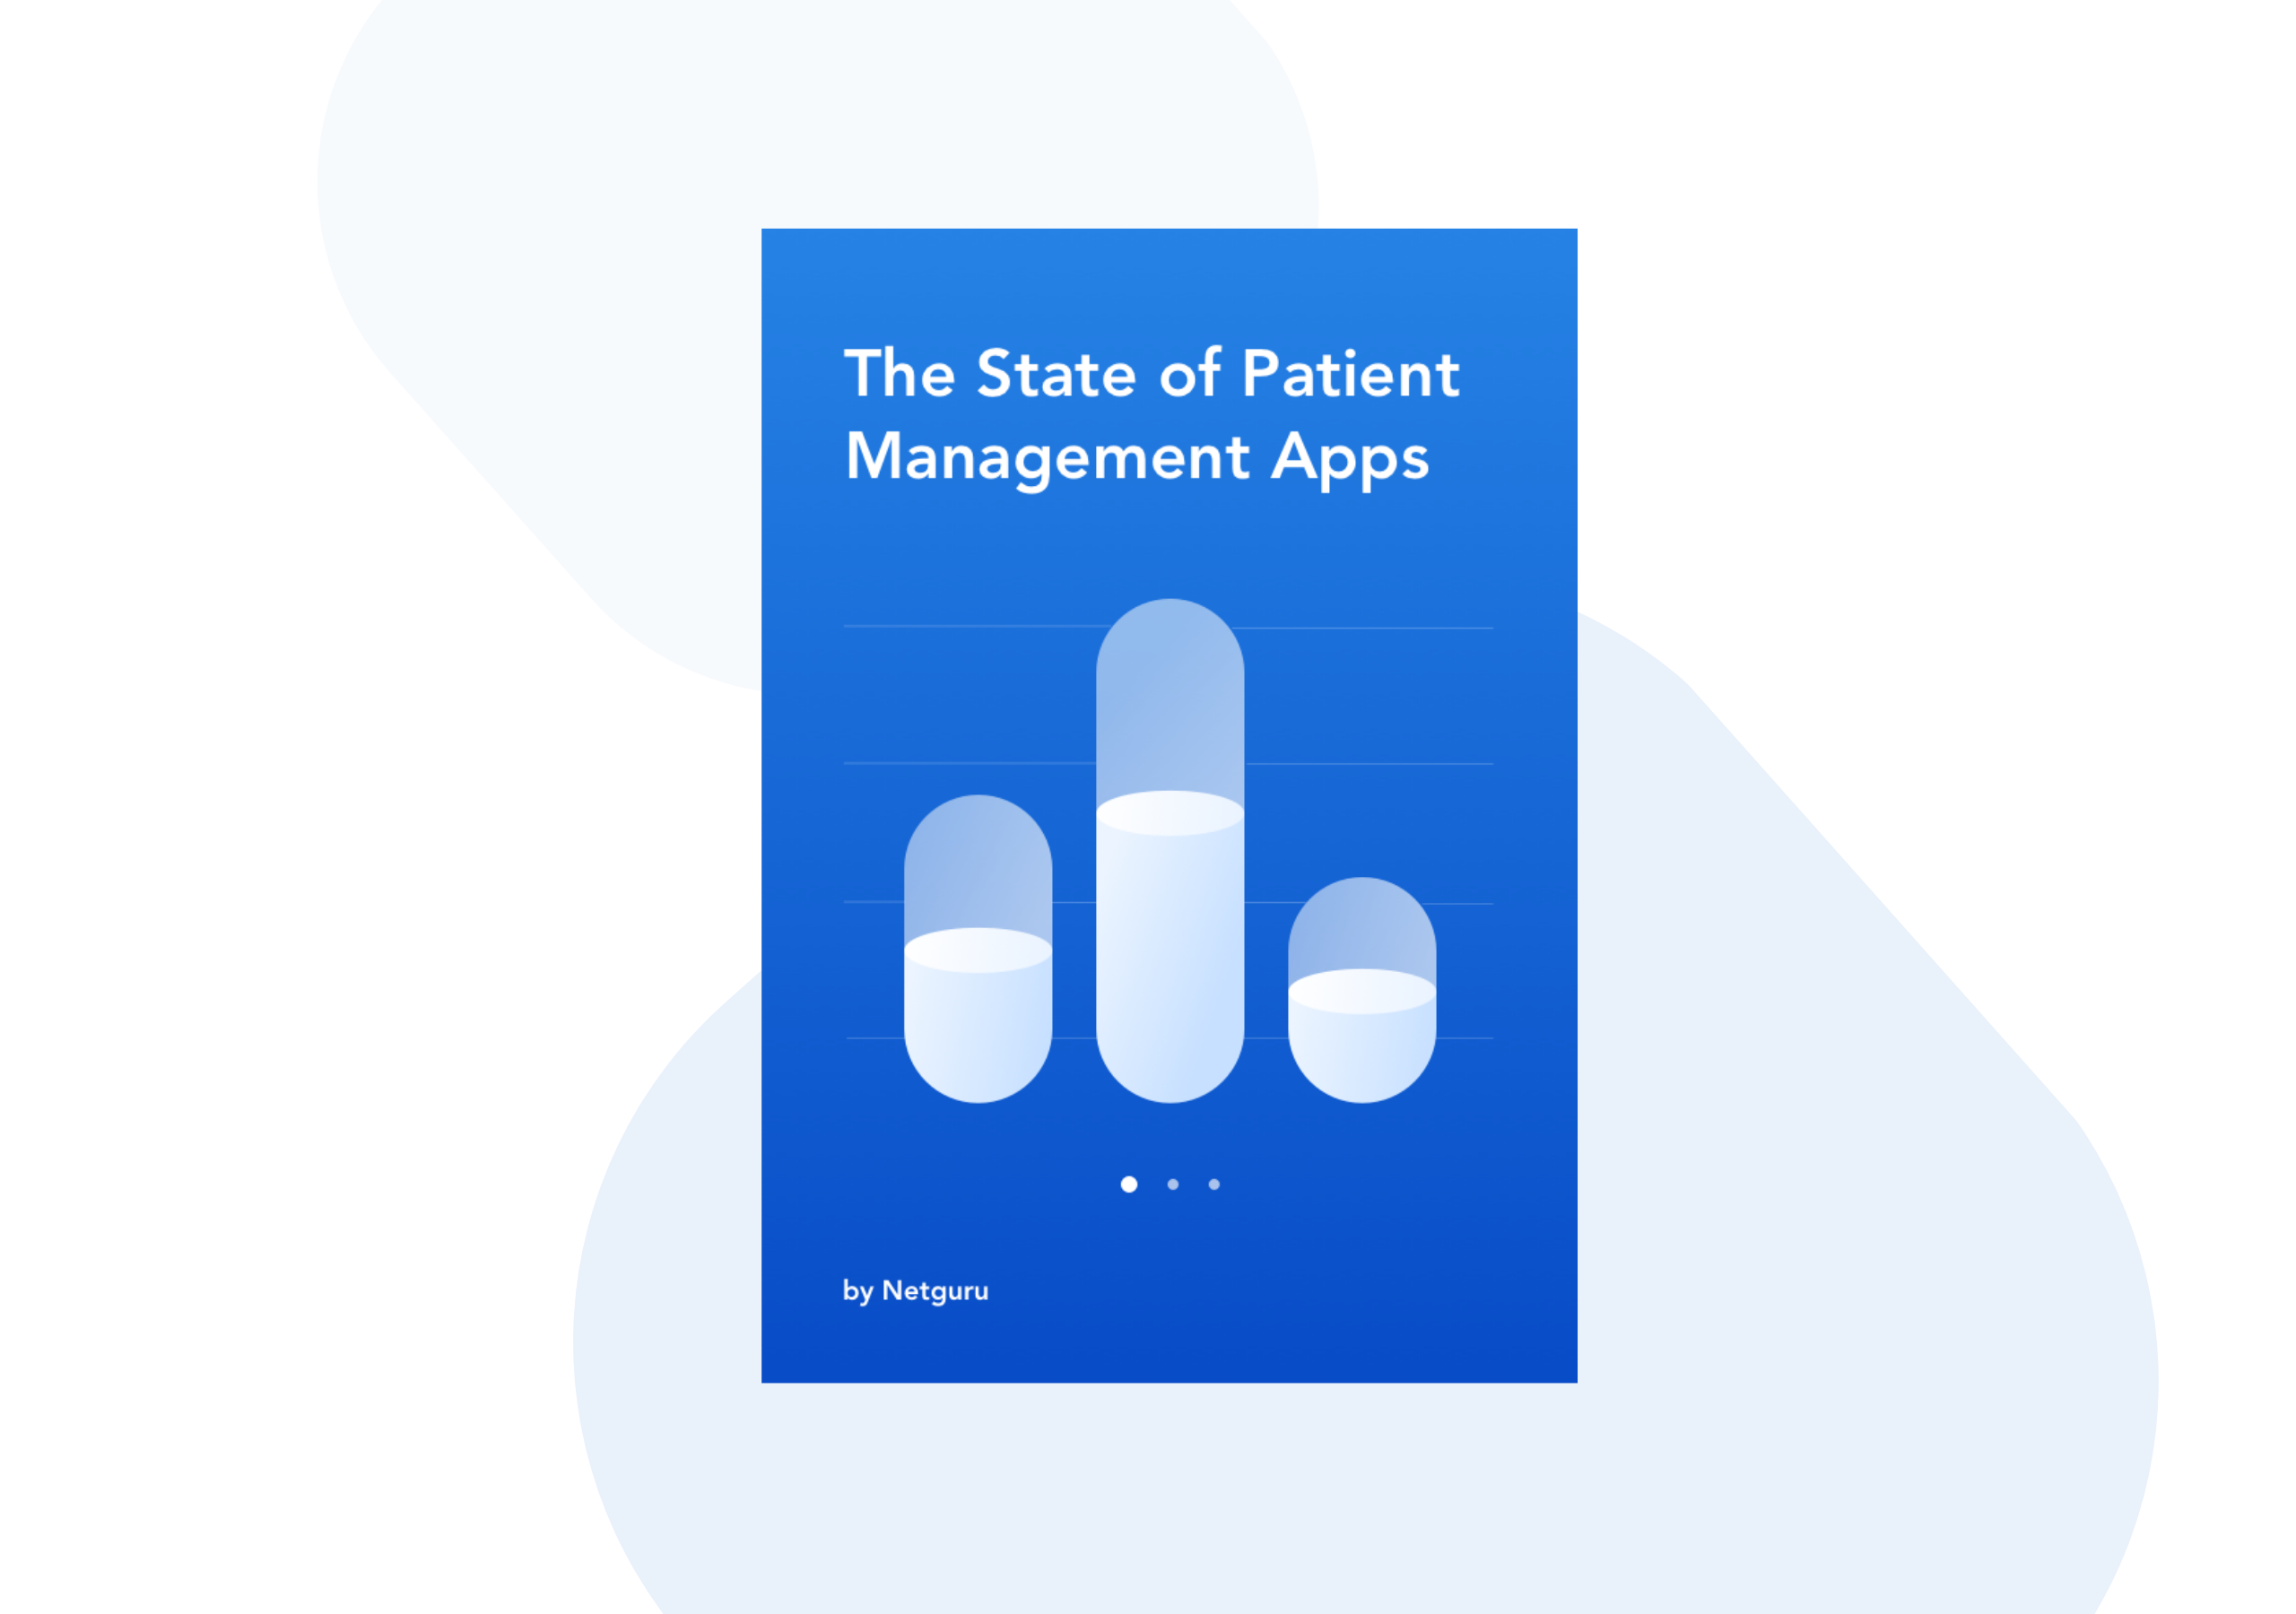 The State of Patient Management Apps